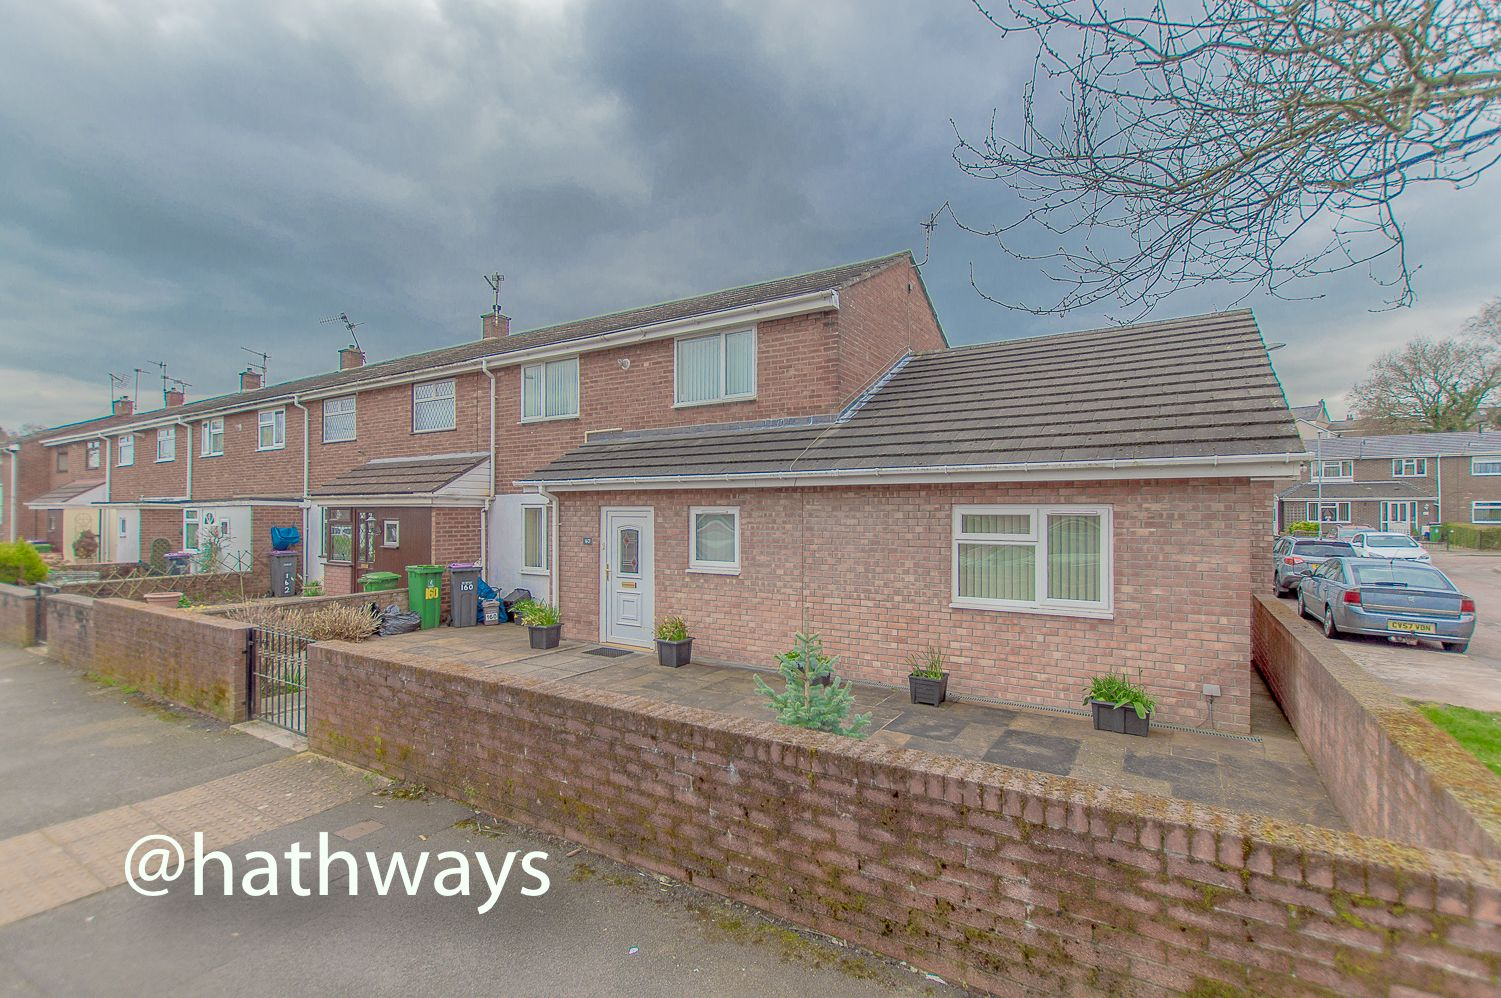 3 bed house to rent in Llewellyn Road, NP44